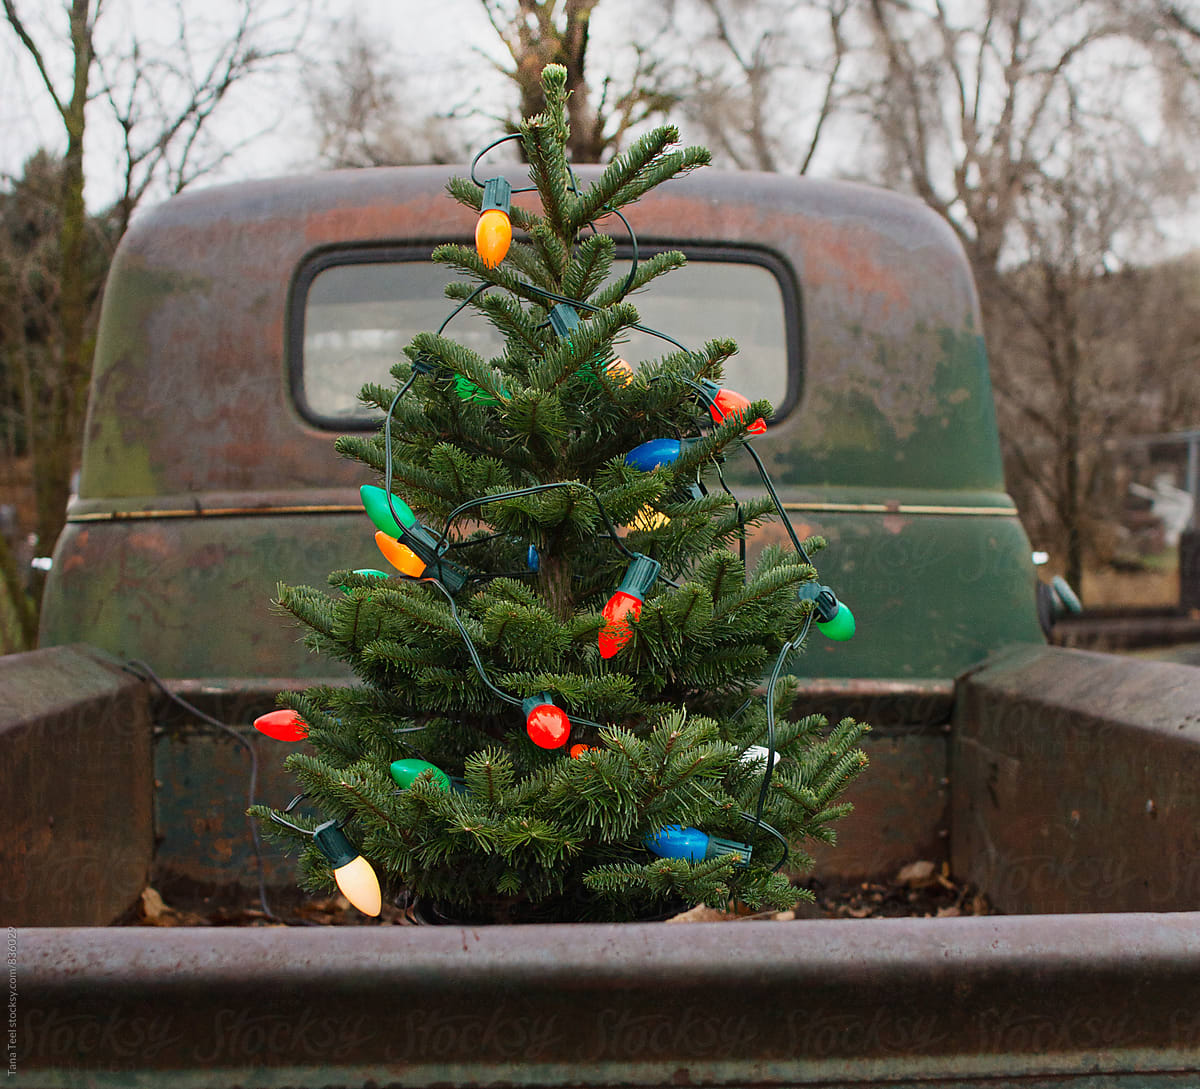 Free Christmas Tree Pick Up: Small Christmas Tree In Back Of Old Pickup